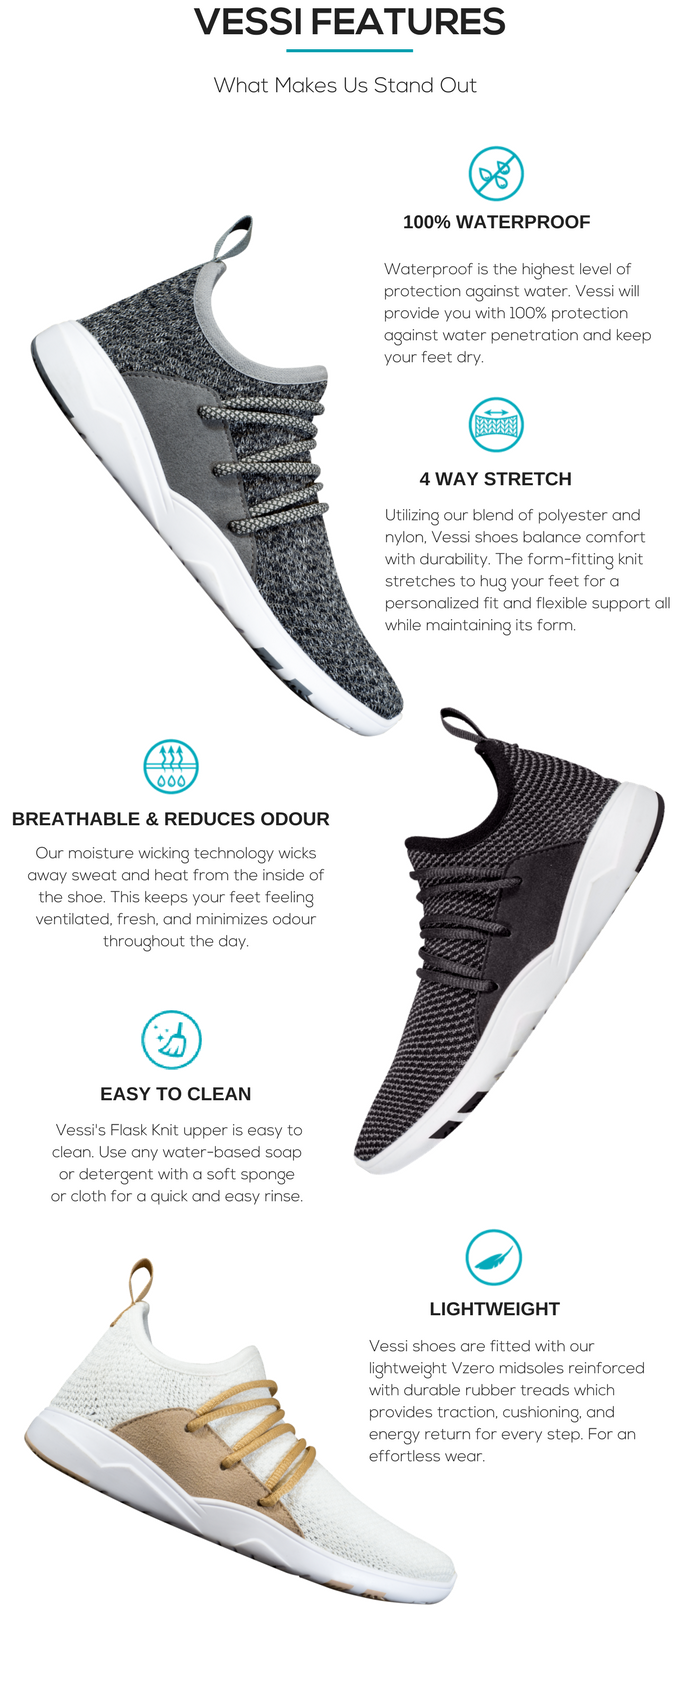 Vessi - The World's First 100% Waterproof Knit Shoes by Vessi